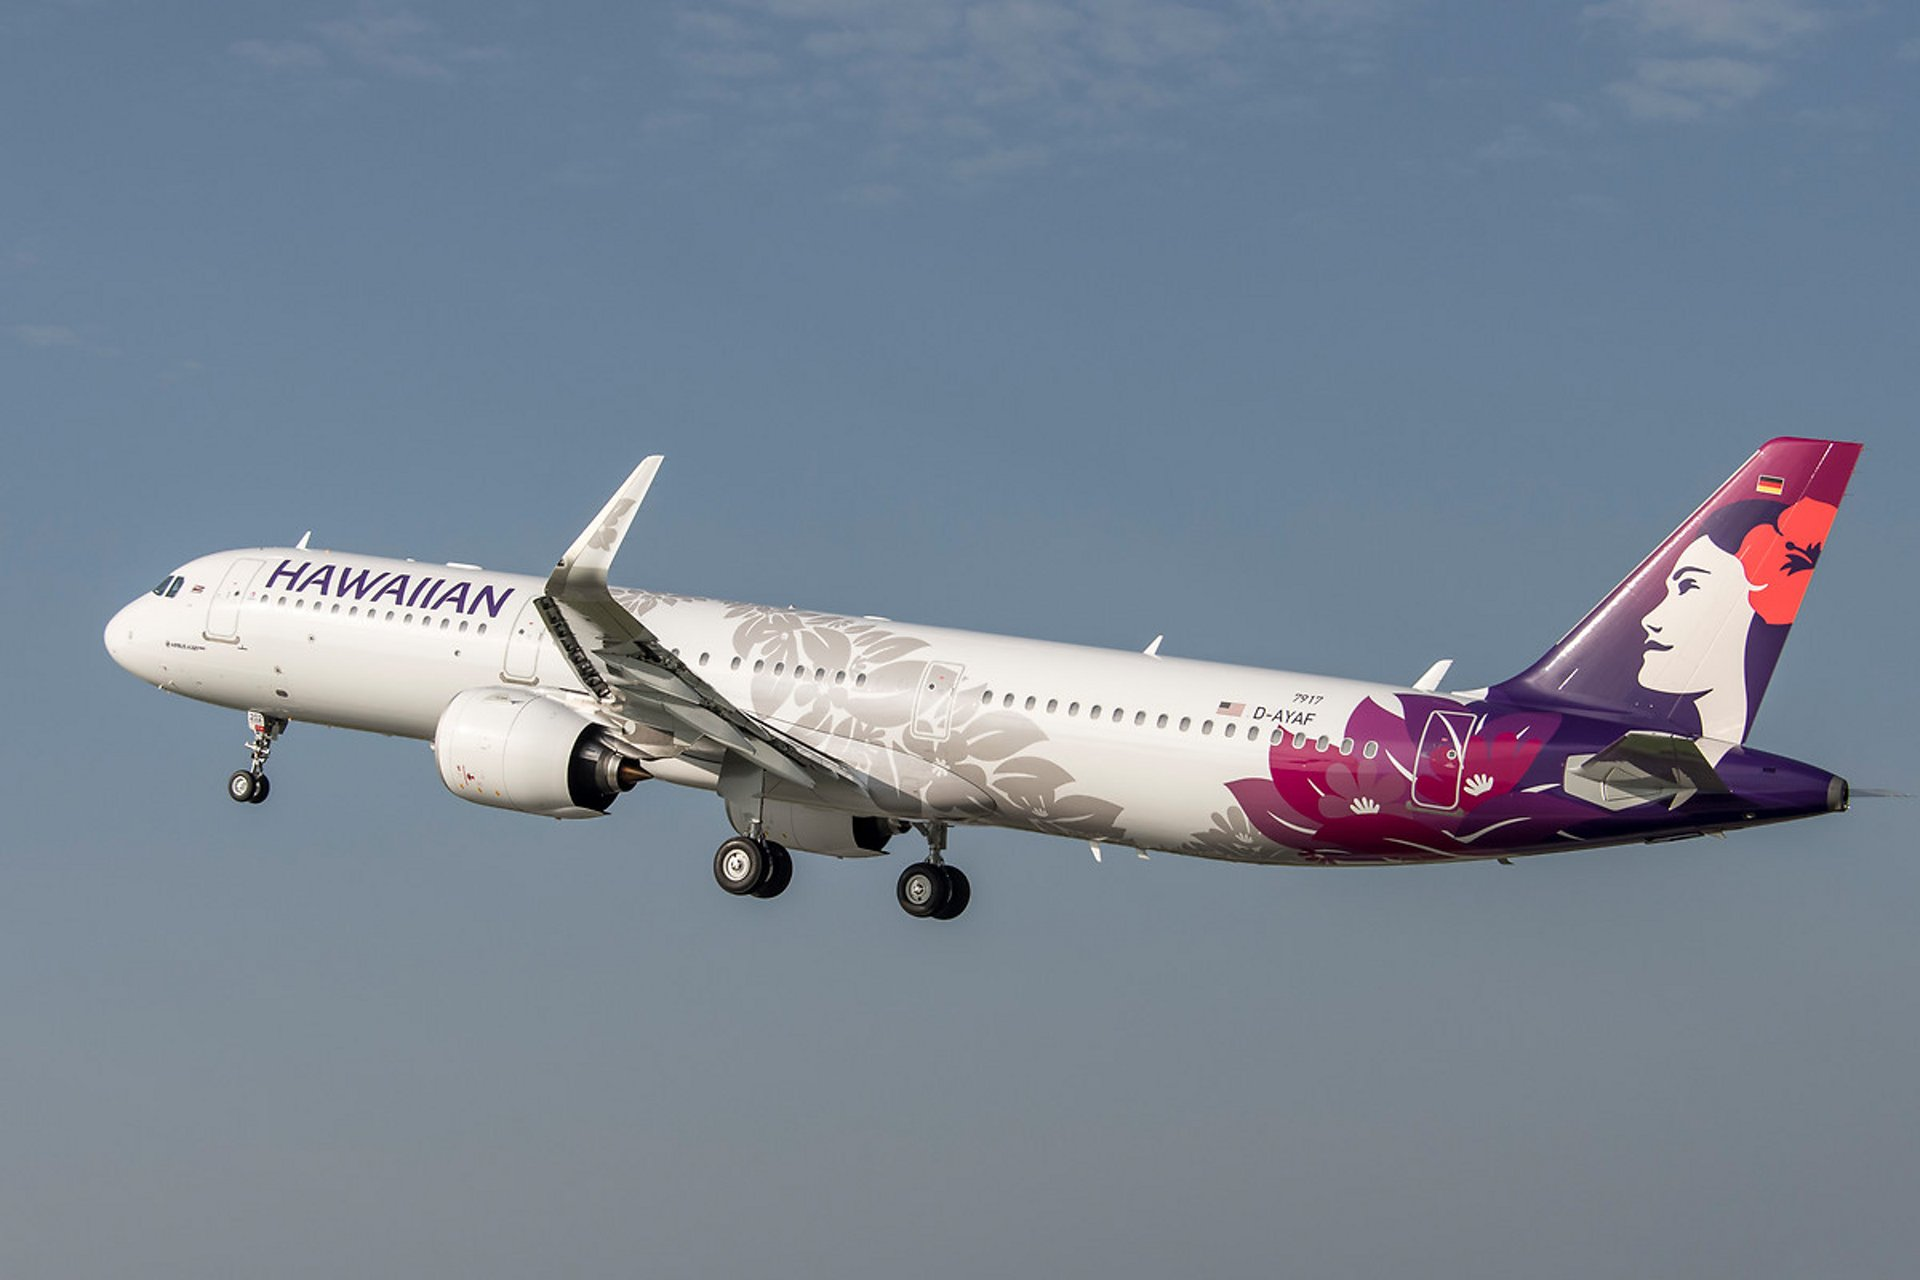 NAVBLUE, Hawaiian Airlines partner on N-Trackingto complement existing Flight Planning with full Aircraft Situational Display (ASD) capabilities